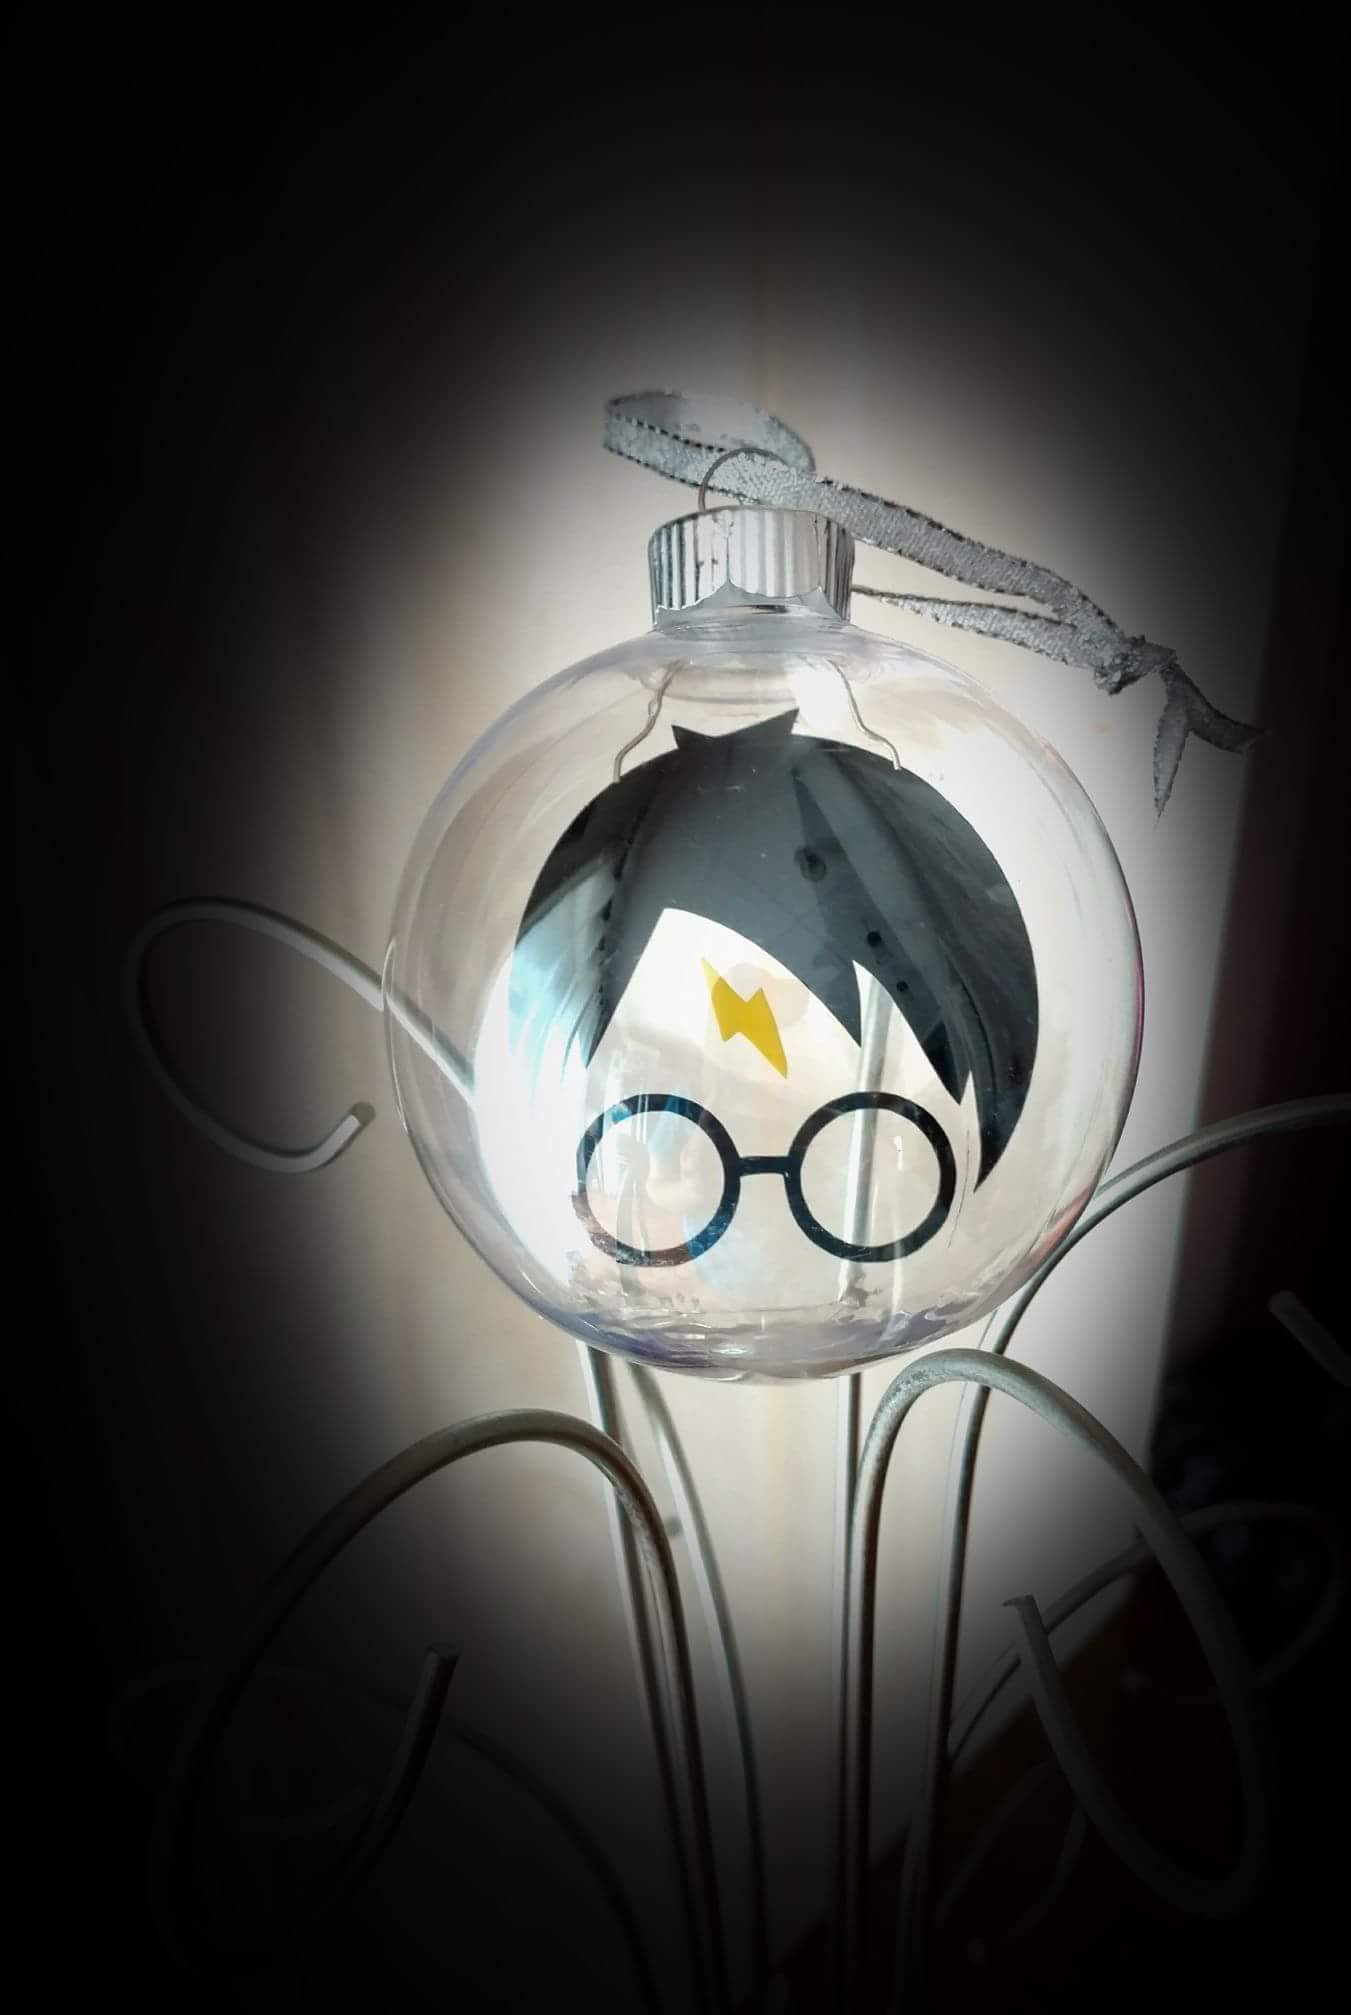 Crystal Ball Shaped Lamp Is Painted With Harry Potter Face